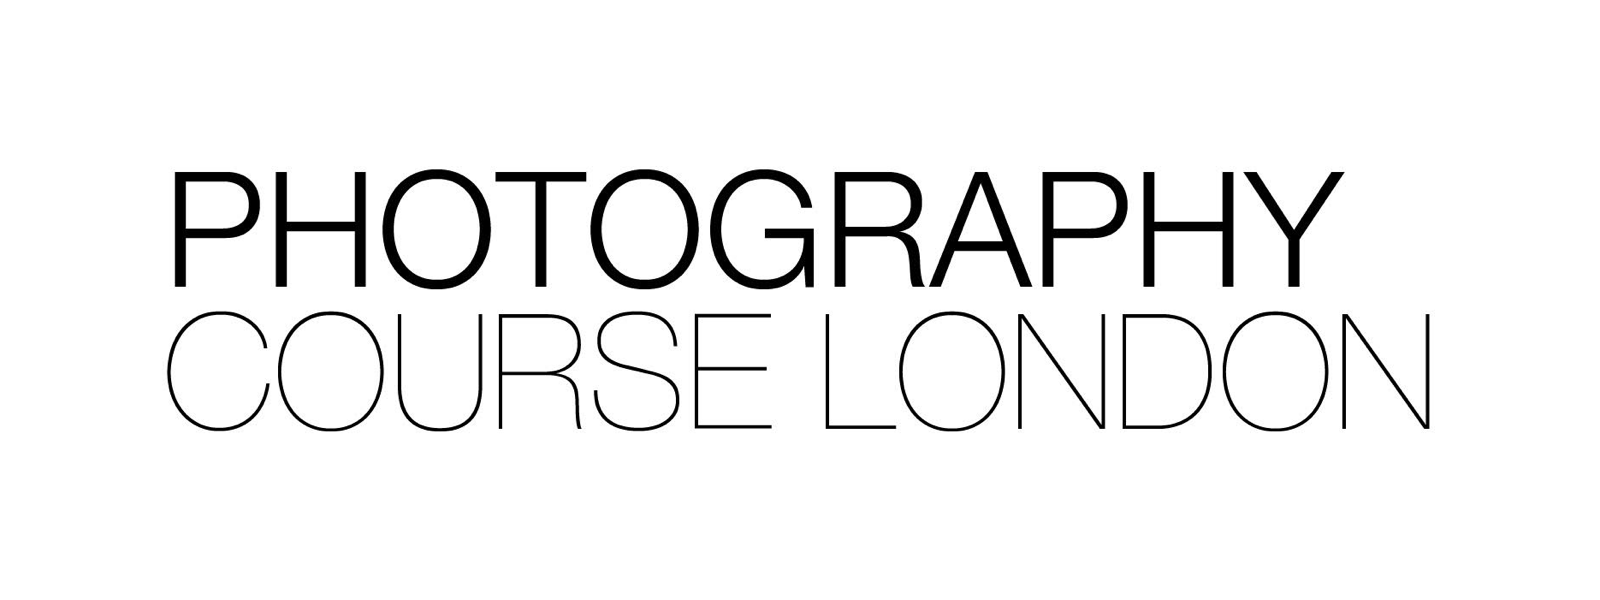 Introduction to the Darkroom by Photography Course London - photography in London